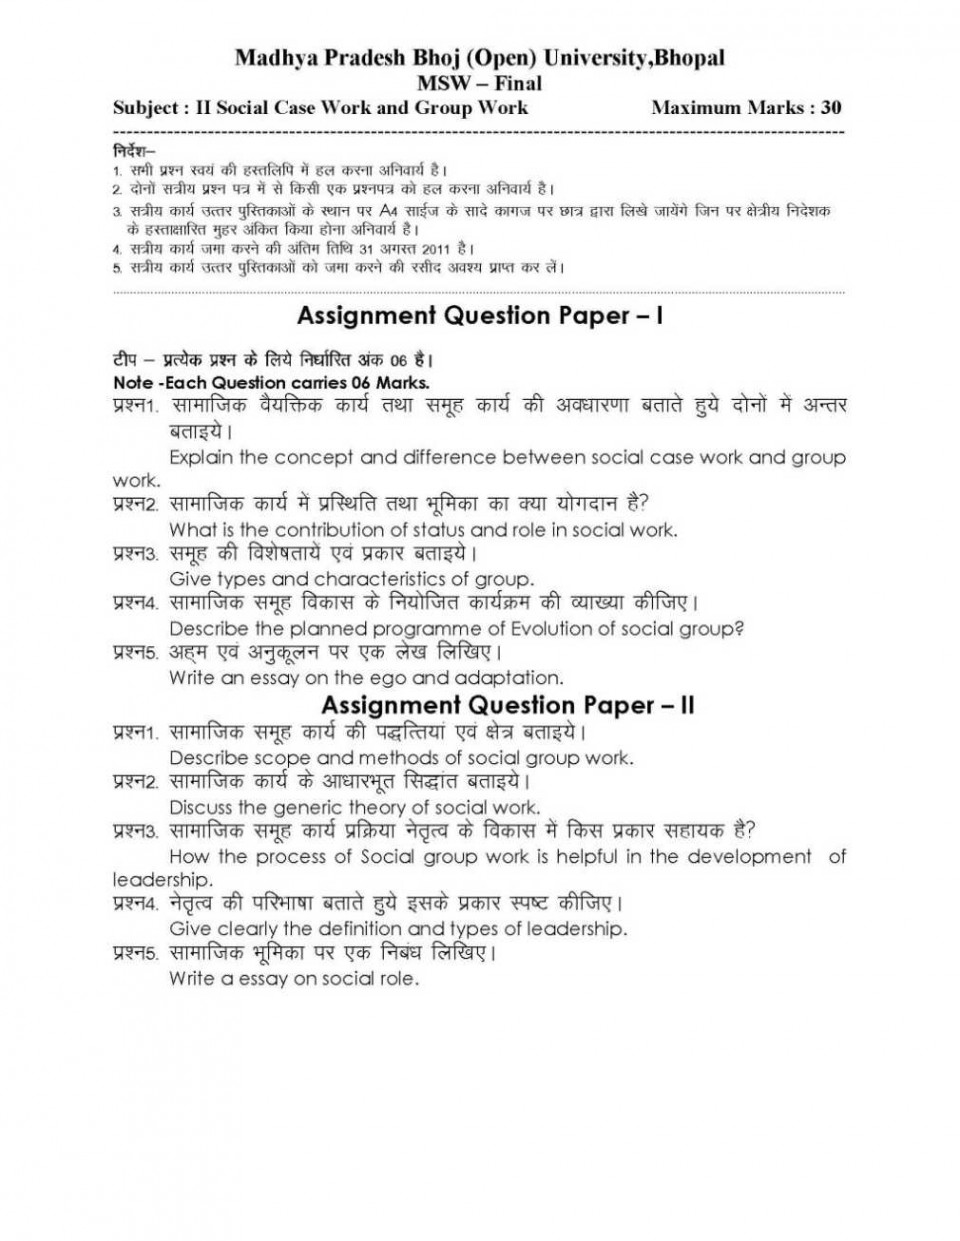 011 Bhoj University Bhopal Msw Leadership Experience Essay Dreaded For Scholarship Describe Your Examples 960